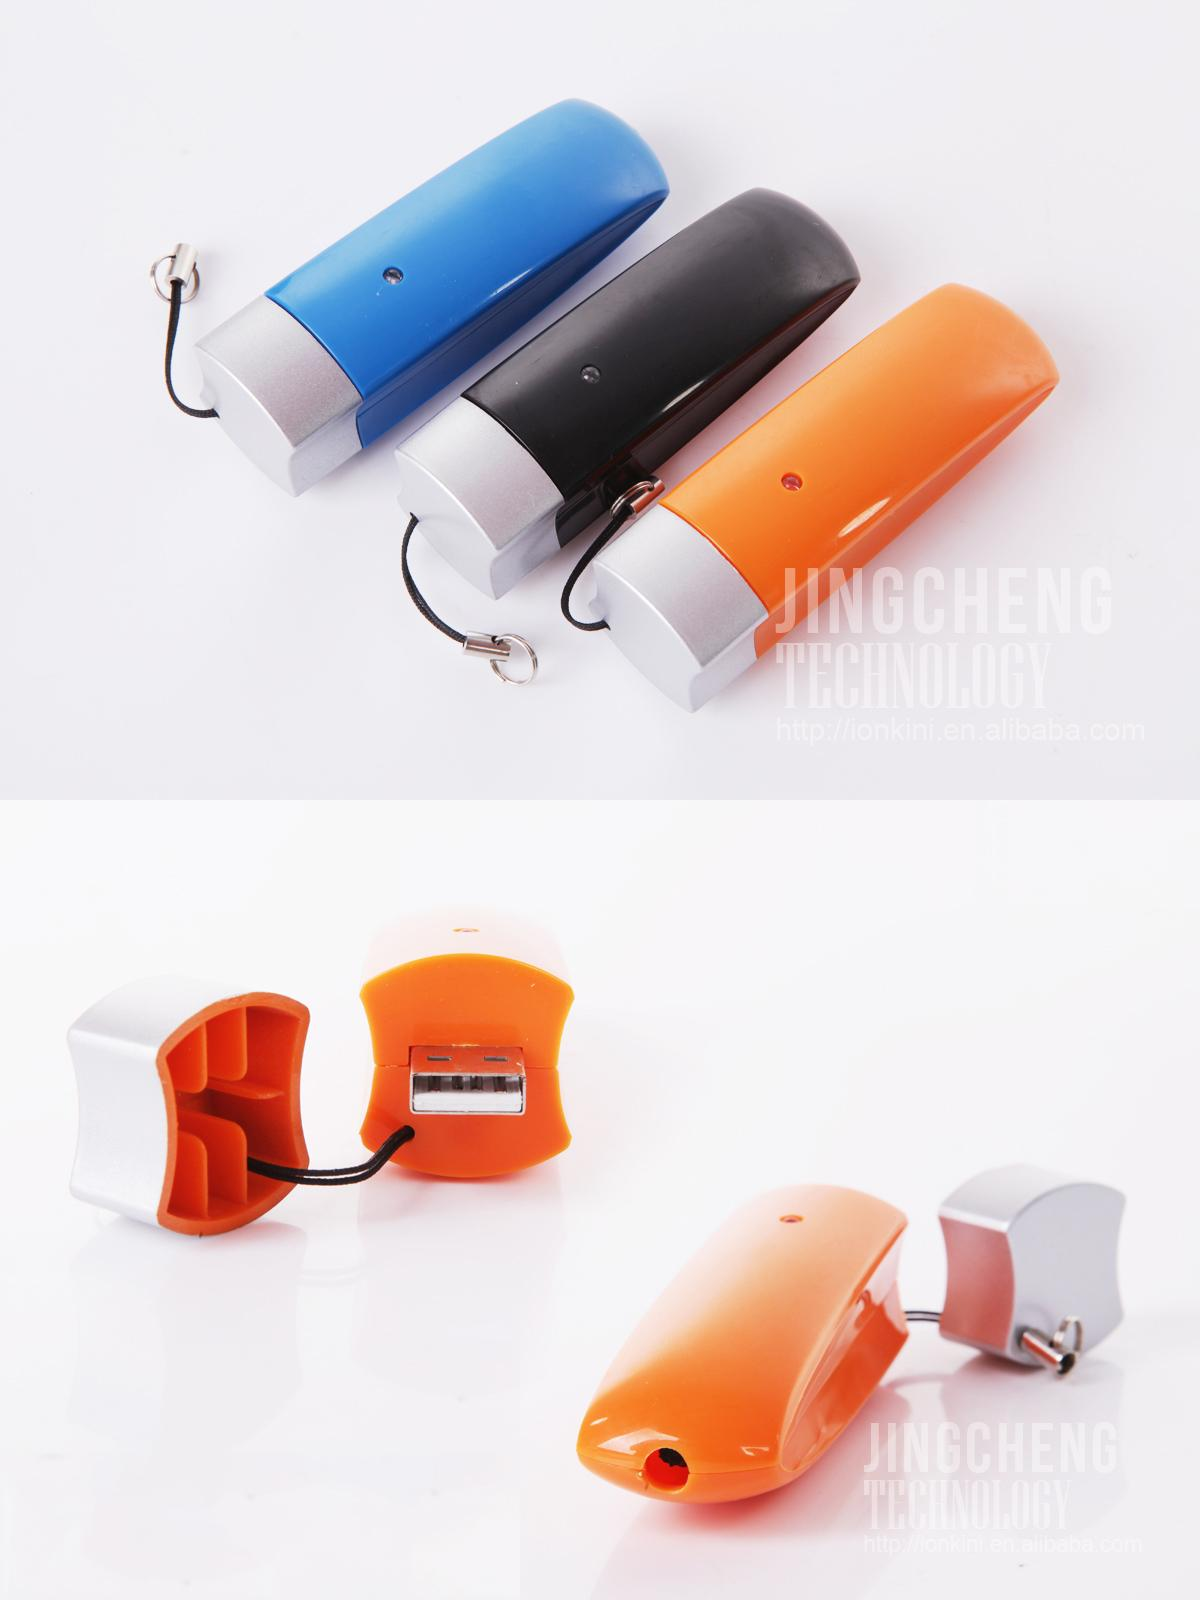 Usb Air Purifier Product ~ Latest electronic devices air purifier innovative usb